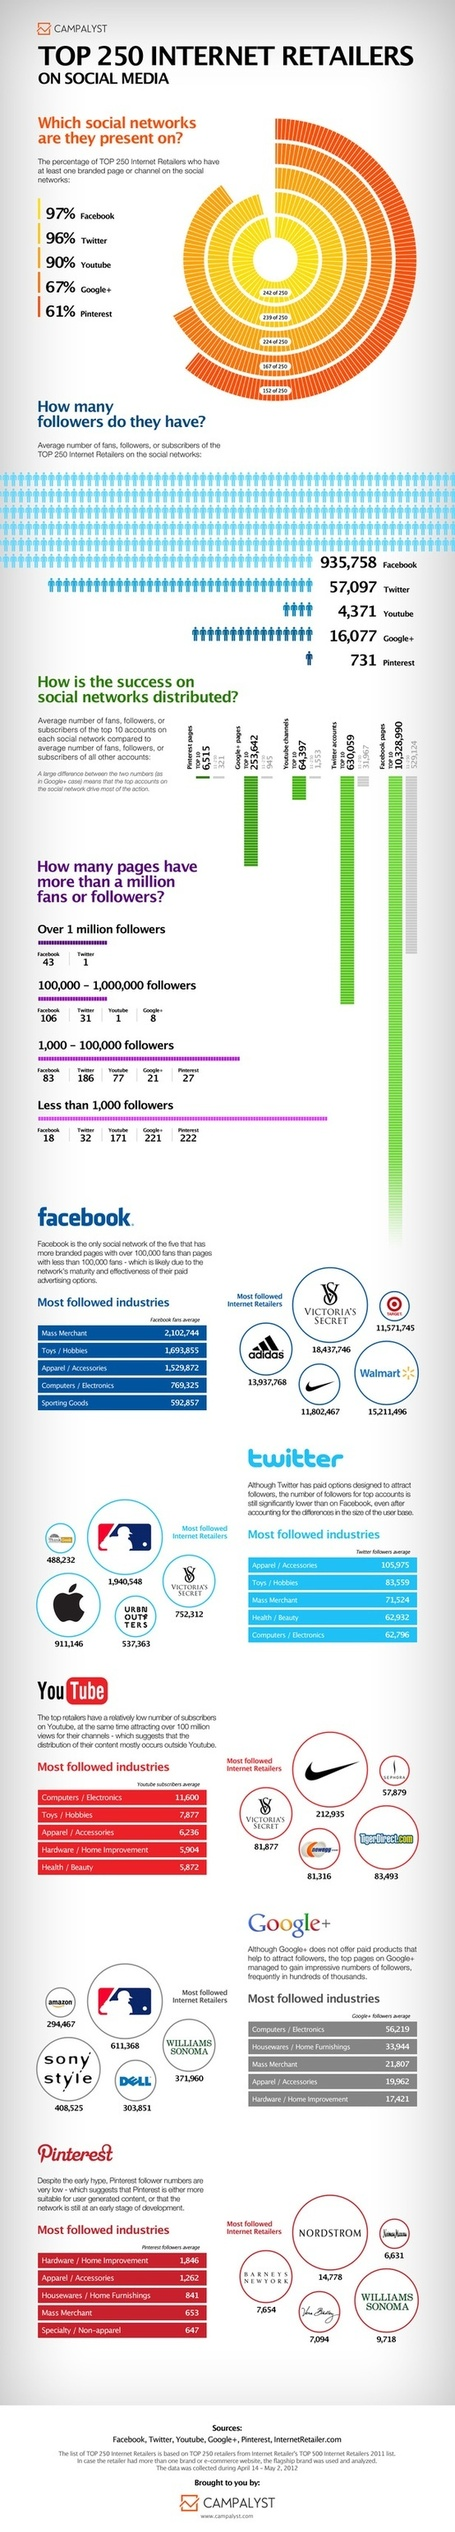 Top 250 Social Internet Retailers | Public Relations & Social Media Insight | Scoop.it